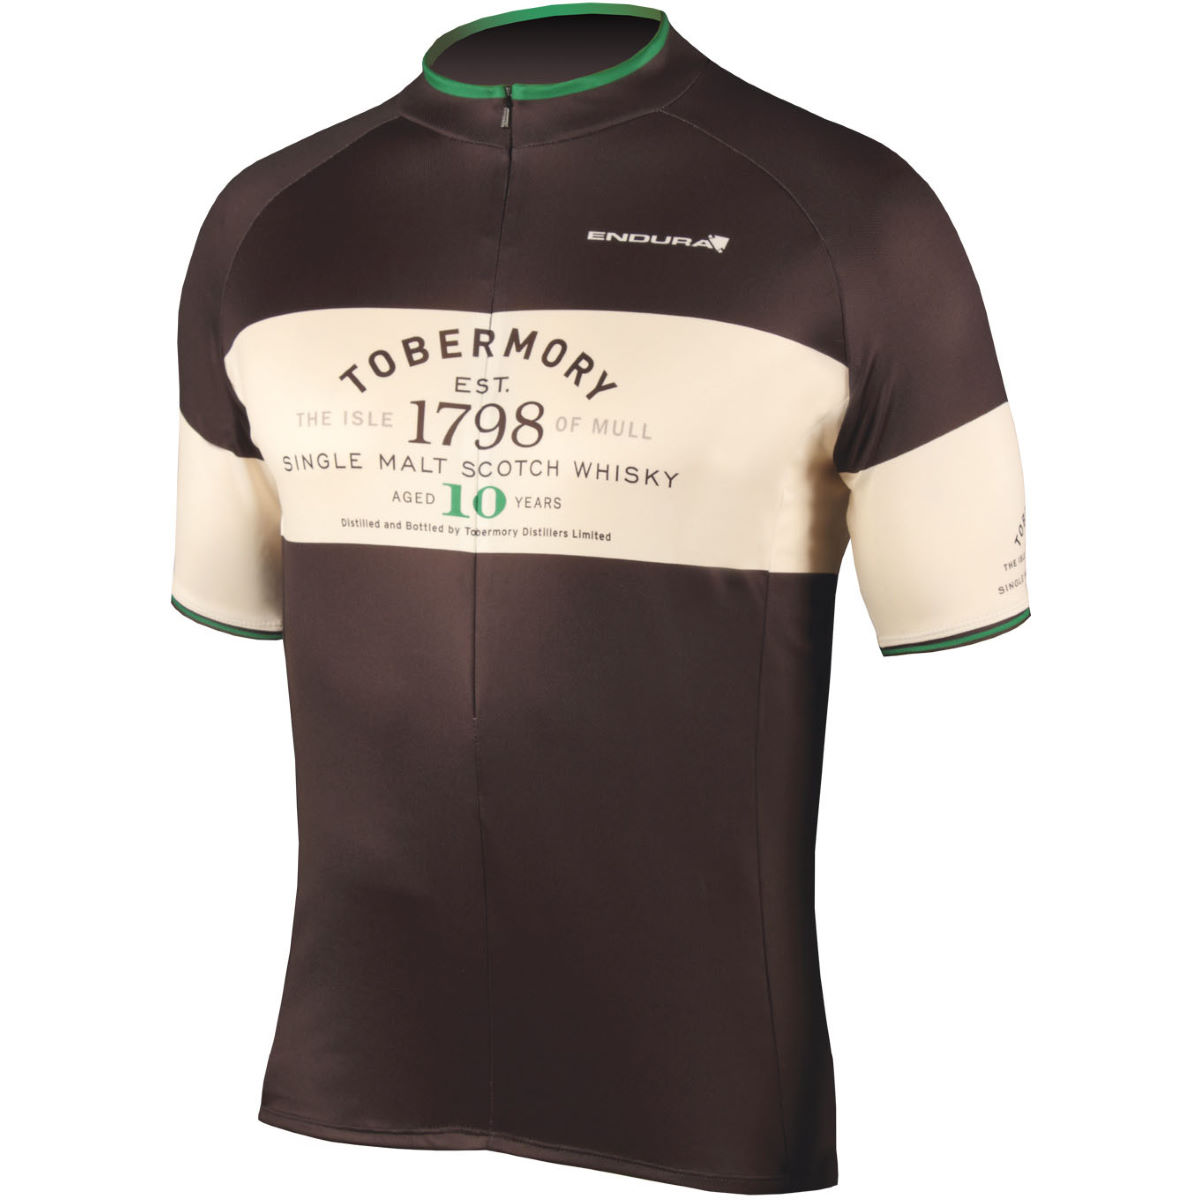 Maillot Endura Tobermory Whisky - Small Noir Maillots vélo à manches courtes